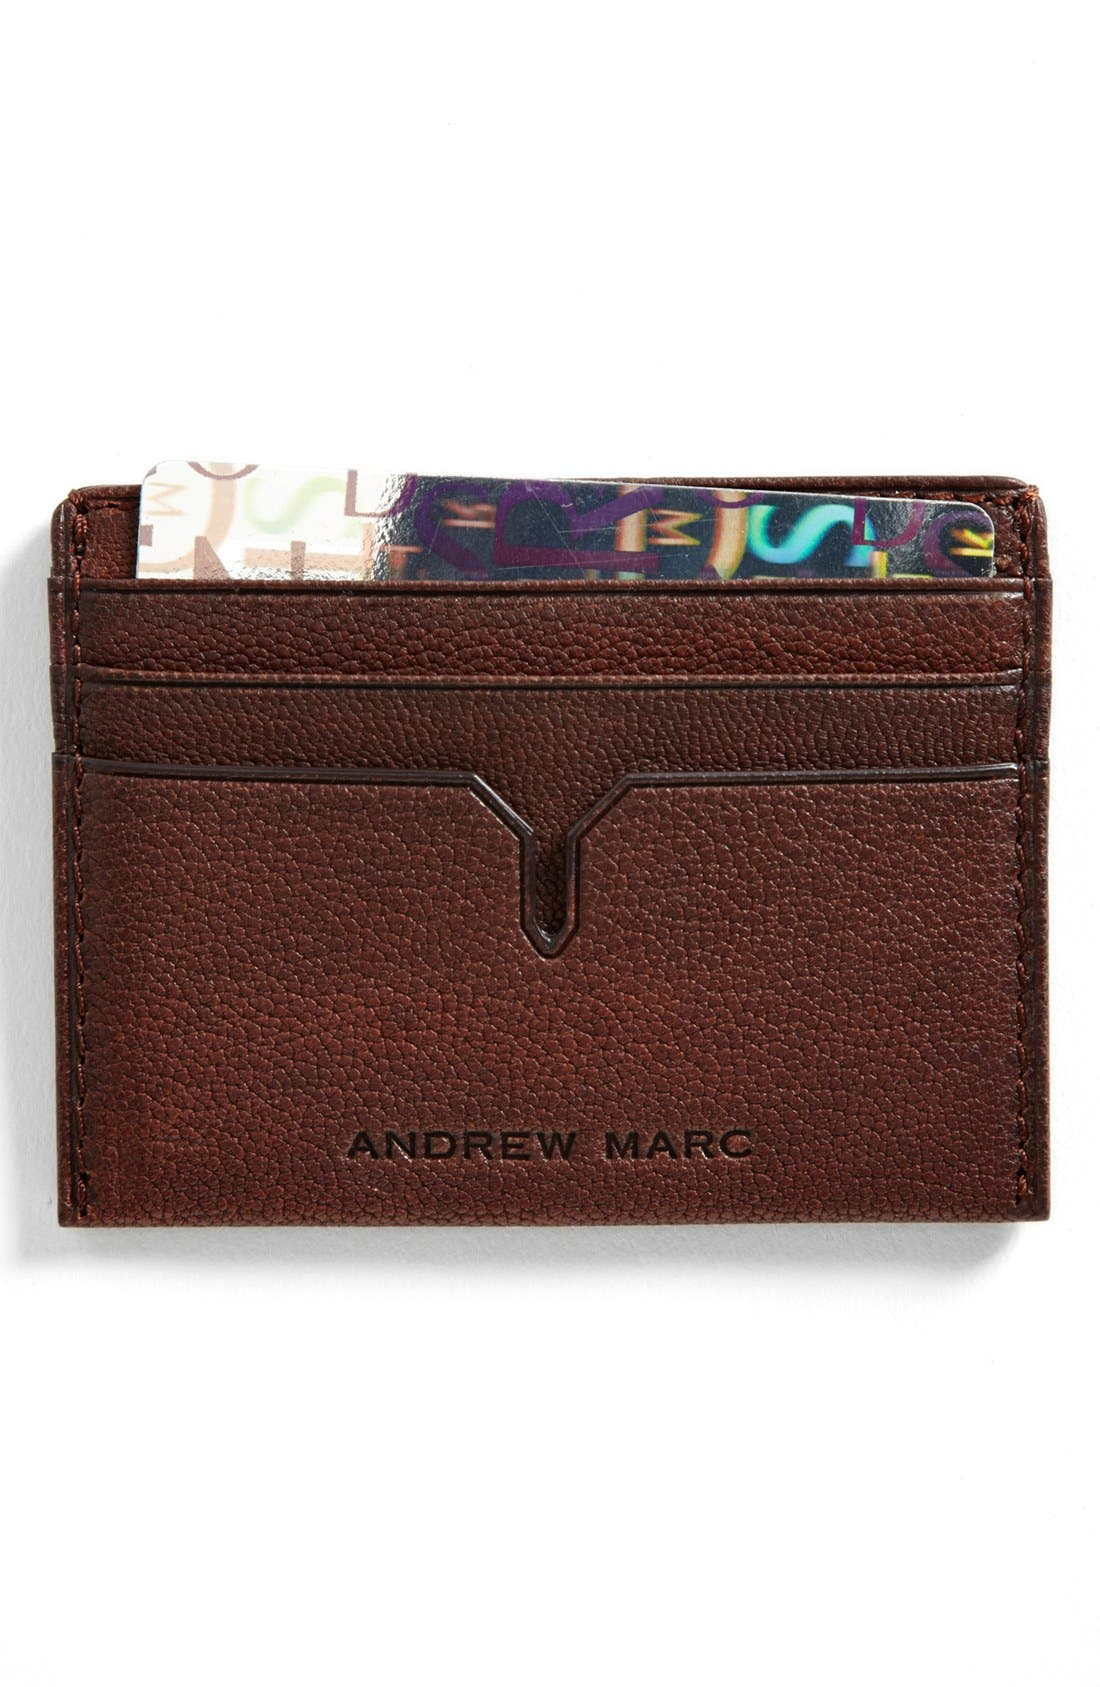 Alternate Image 1 Selected - Andrew Marc 'Bowery' Card Case